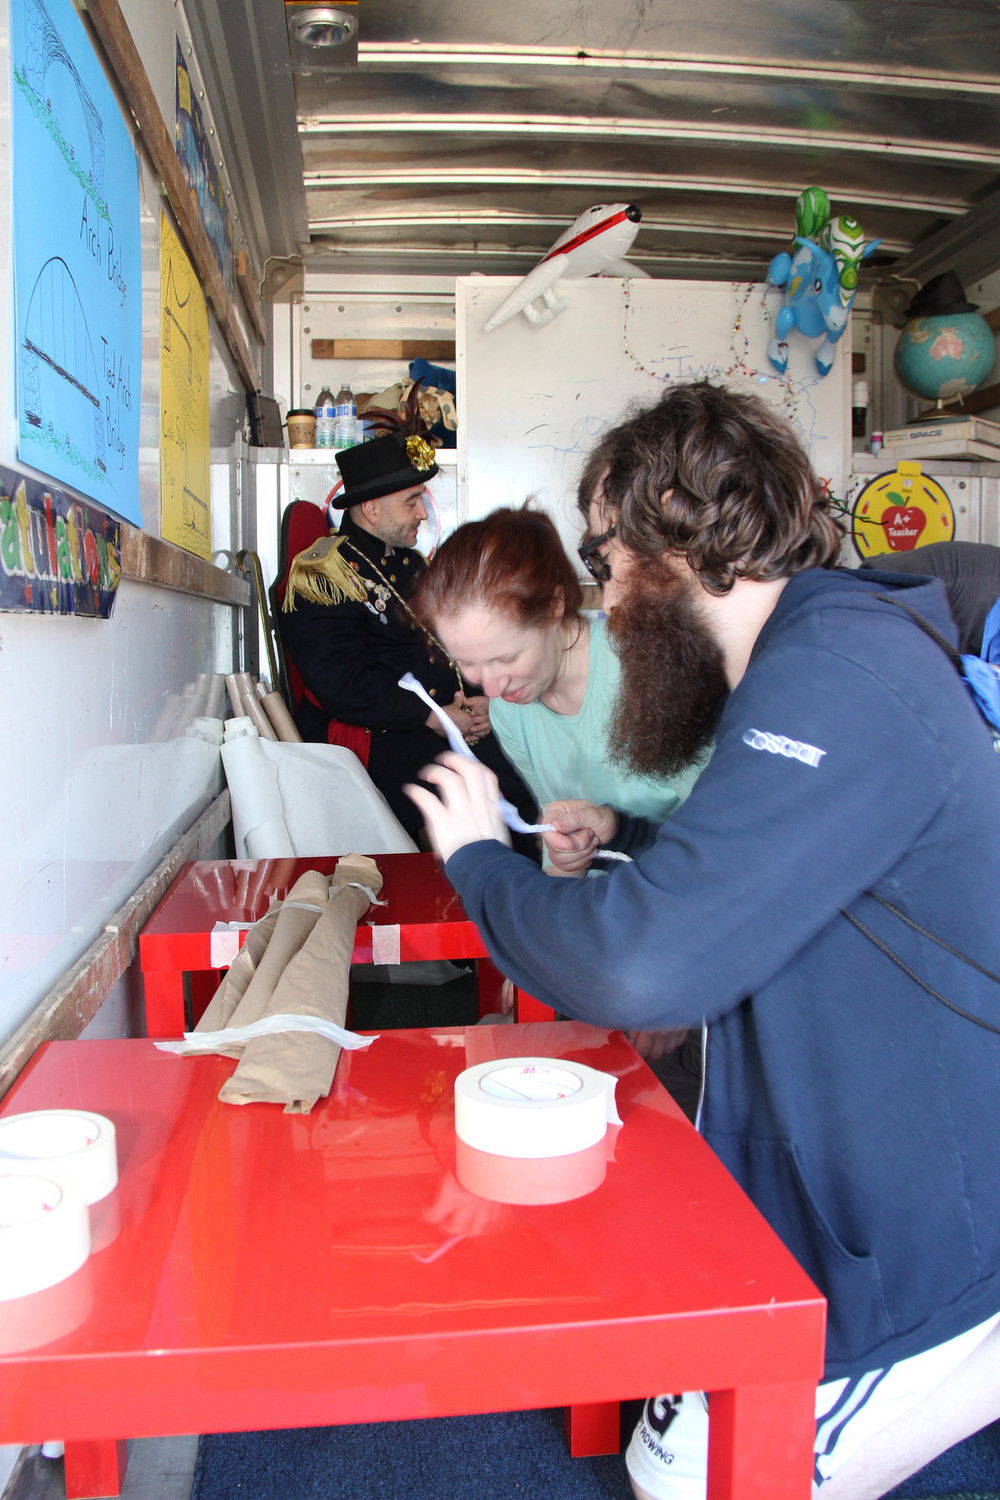 Emperor Norton's Mail-In Engineering Academy